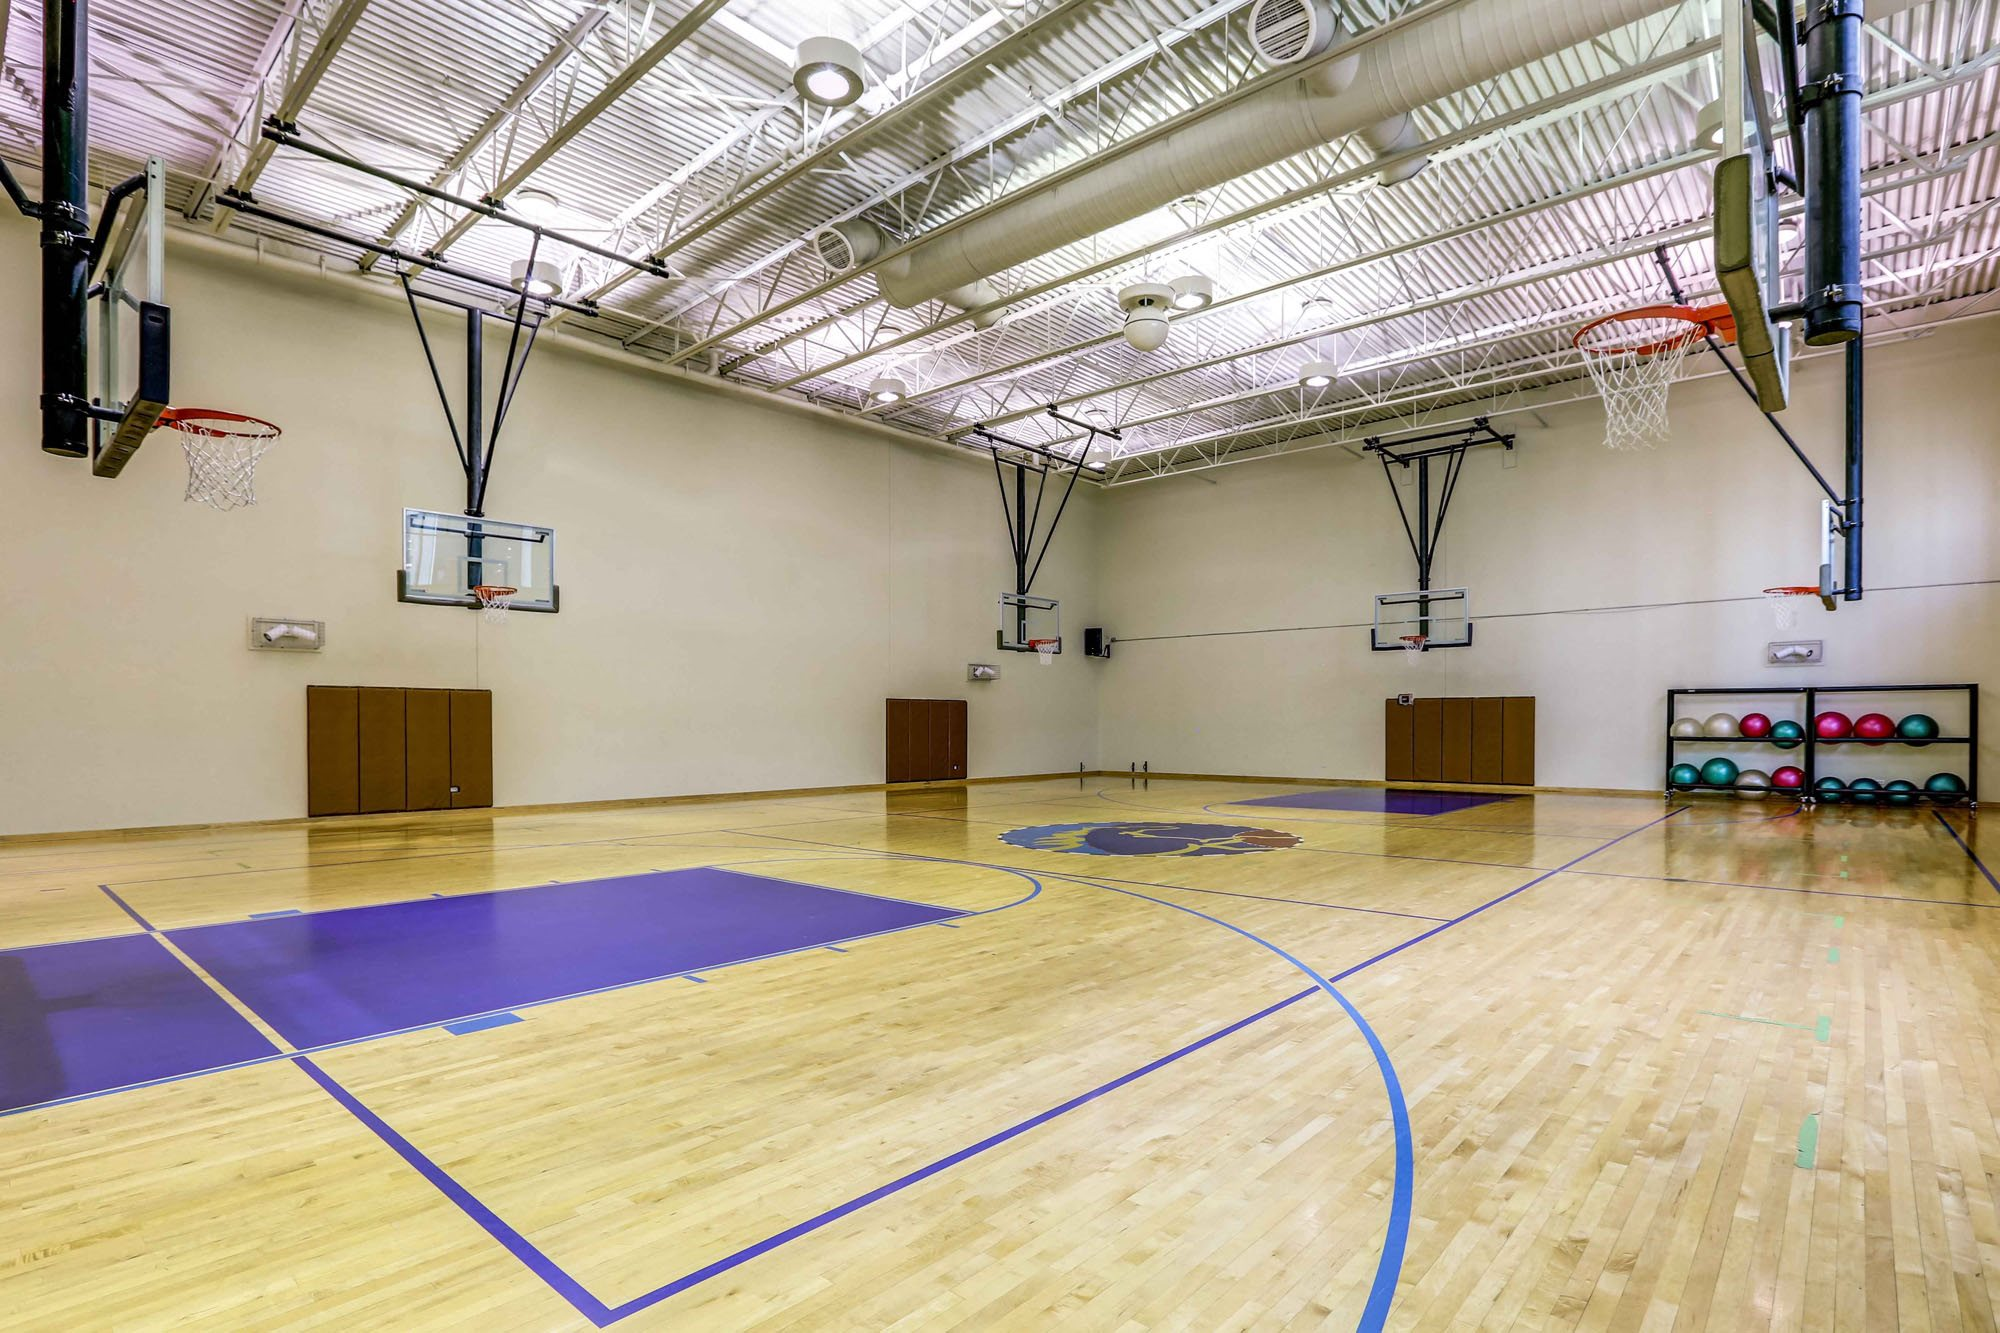 Full-size indoor basketball court